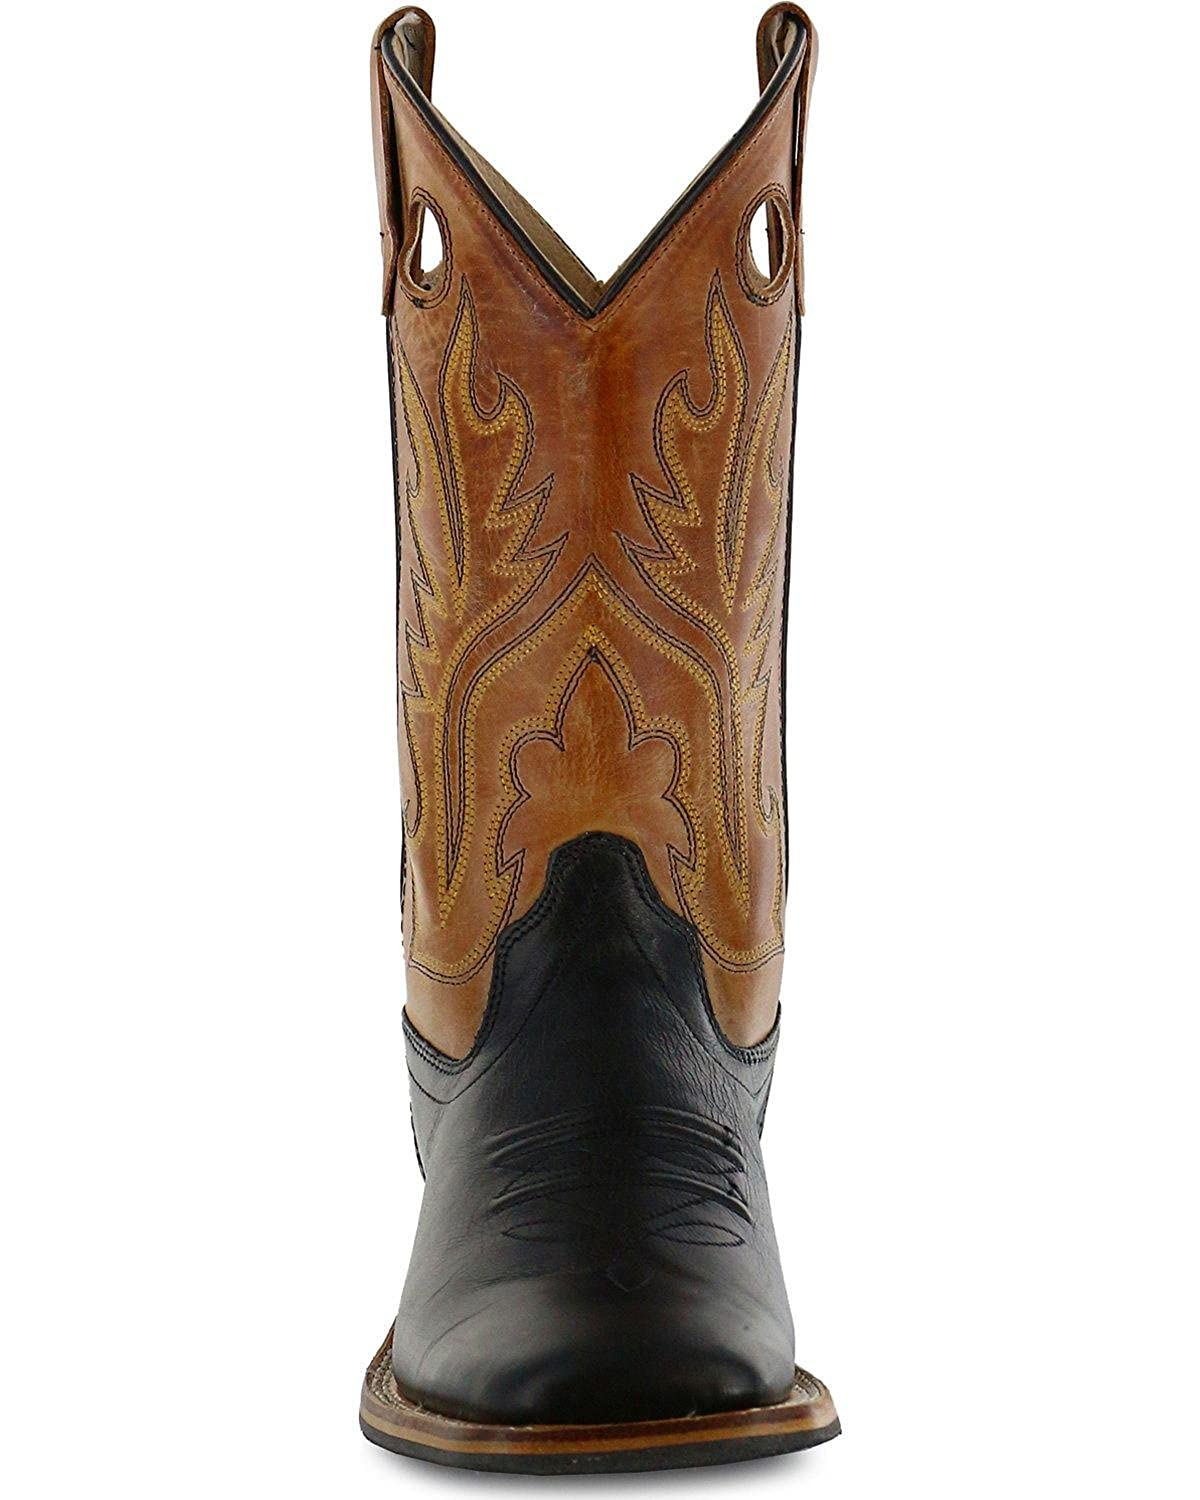 Bsy1810gy BSC1810 Old West Boys Canyon Cowboy Boot Square Toe